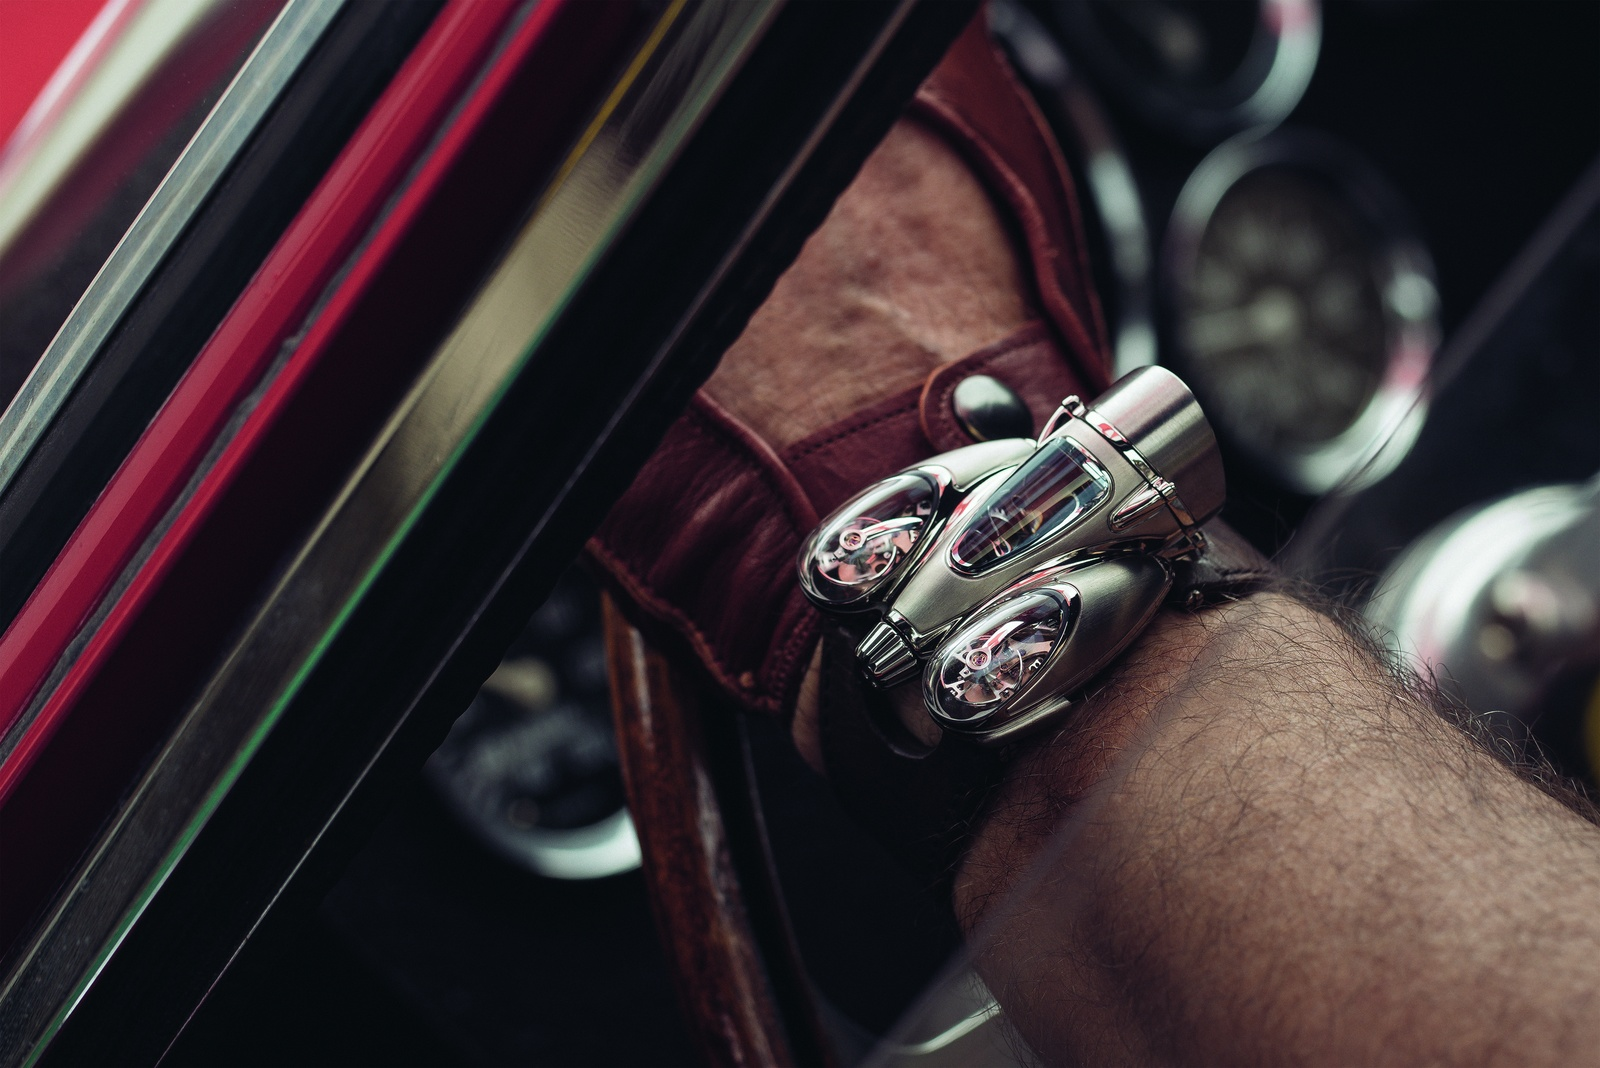 MB&F Horological Machine N°9 'Flow' HM9 wheel